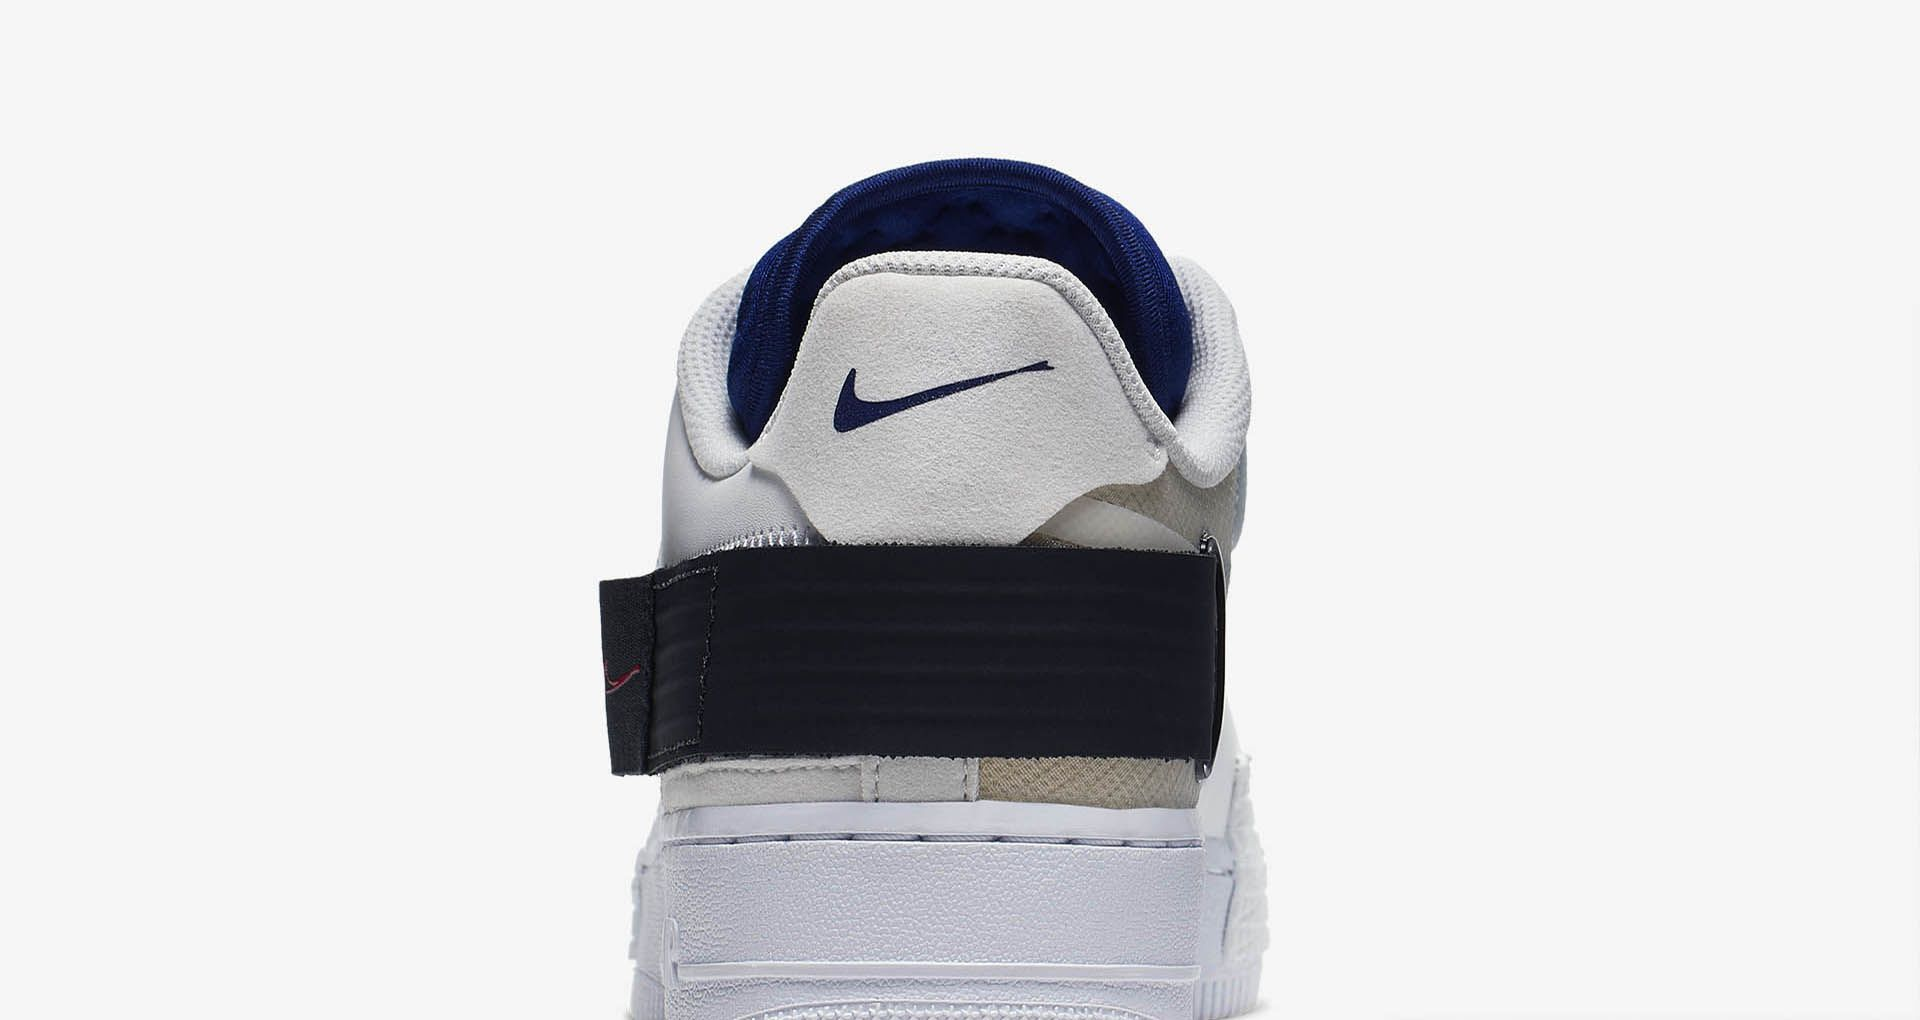 09-nike-air-force-1-low-af1-type-summit-white-ci0054-100